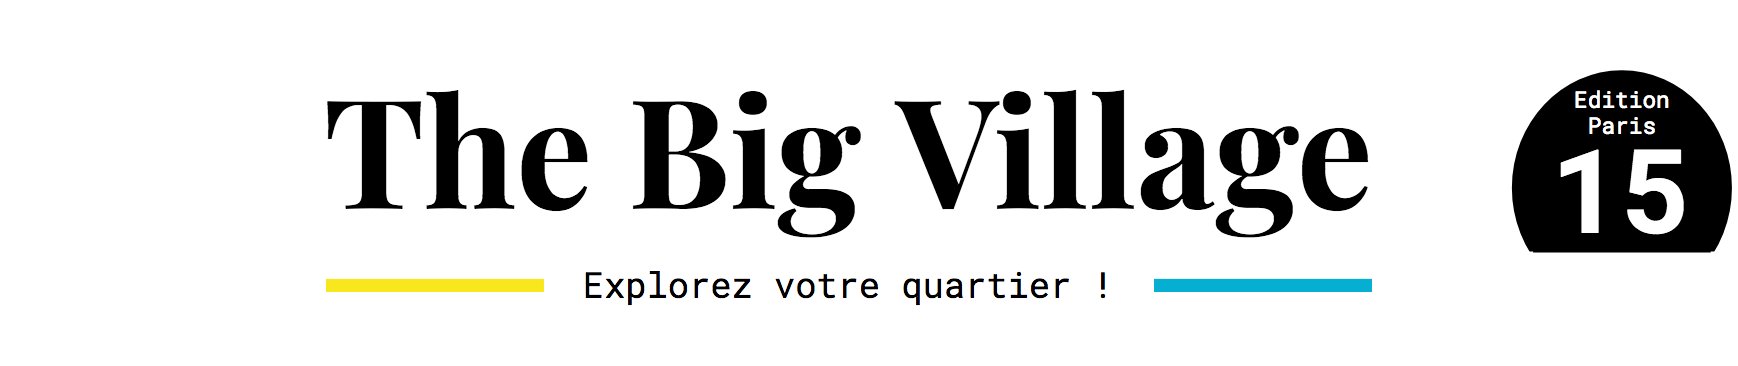 The Big Village - Paris 15